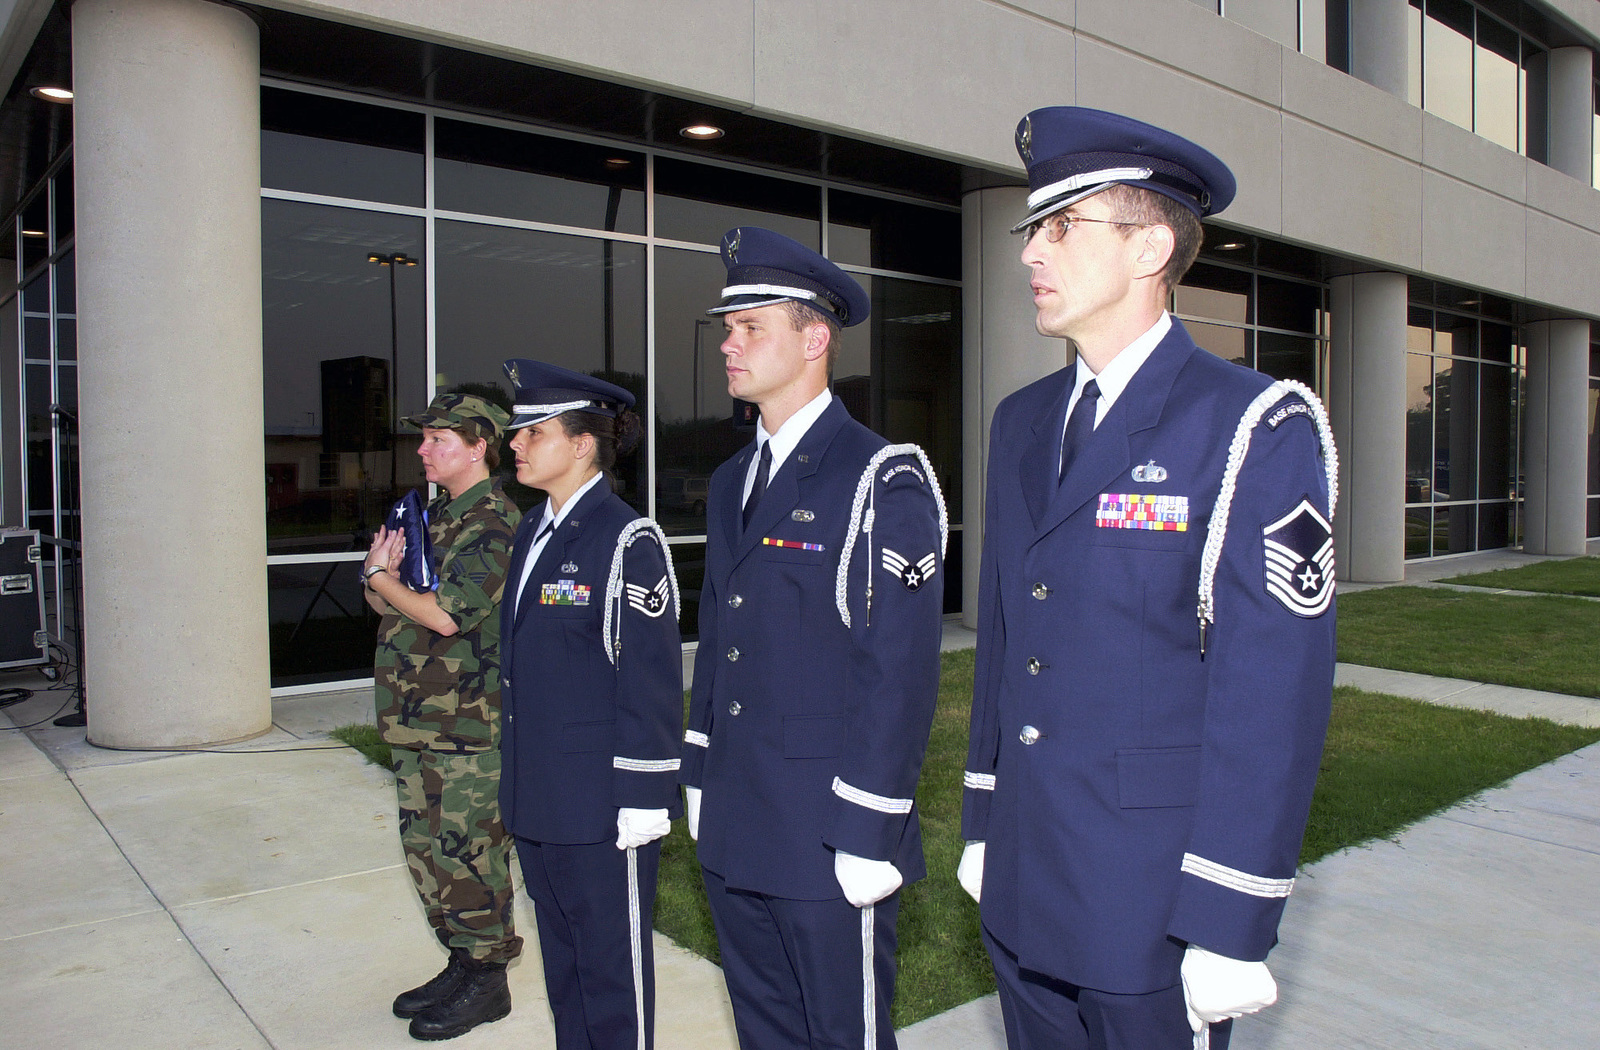 US Air Force (USAF) personnel assigned to the 138th Fighter Wing (FW), Oklahoma (OK), Air National Guard (ANG) Honor Guard, stand ready to raise the base flag in front of the new Headquarters and Support Complex Building for the 138th FW, Tulsa, International Airport (IAP), located in Tulsa, OK